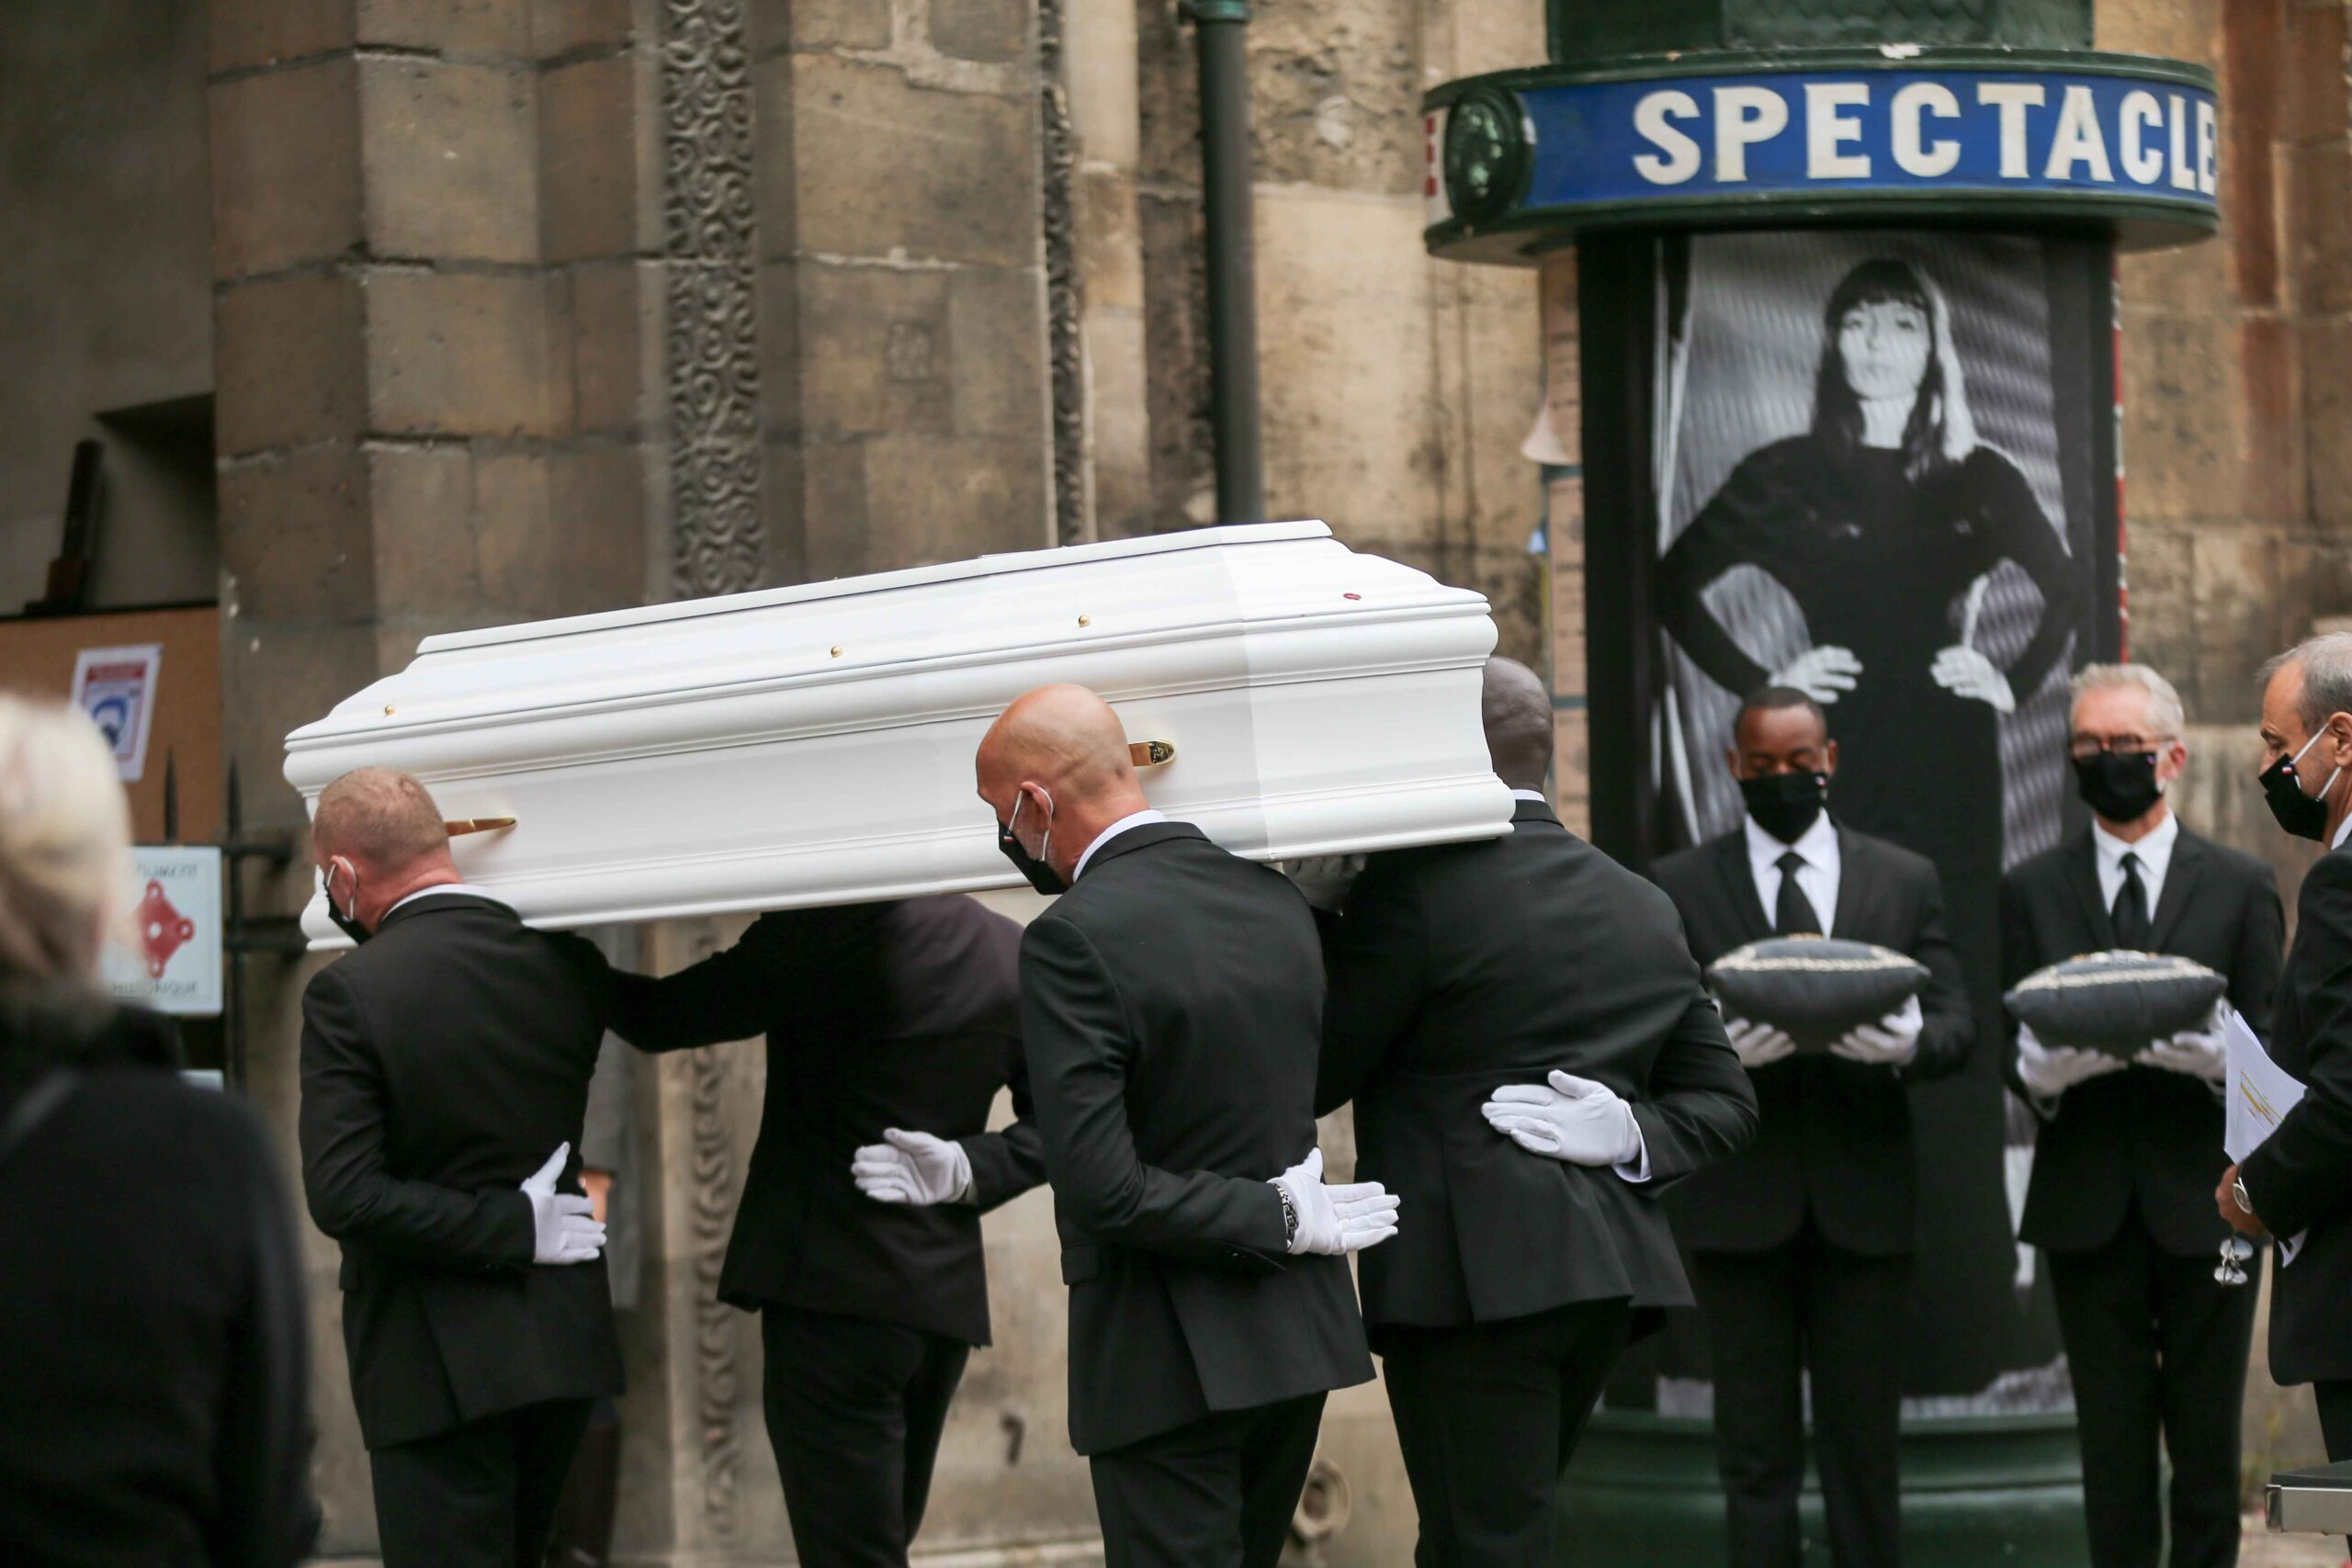 Pallbearers carry the coffin of French singer Juliette Greco during her funeral ceremony at the Saint-Germain-des-Pres church in Paris, on October 5, 2020. Legendary French singer Juliette Greco, whose career spanned over half a century, died aged 93, on 2